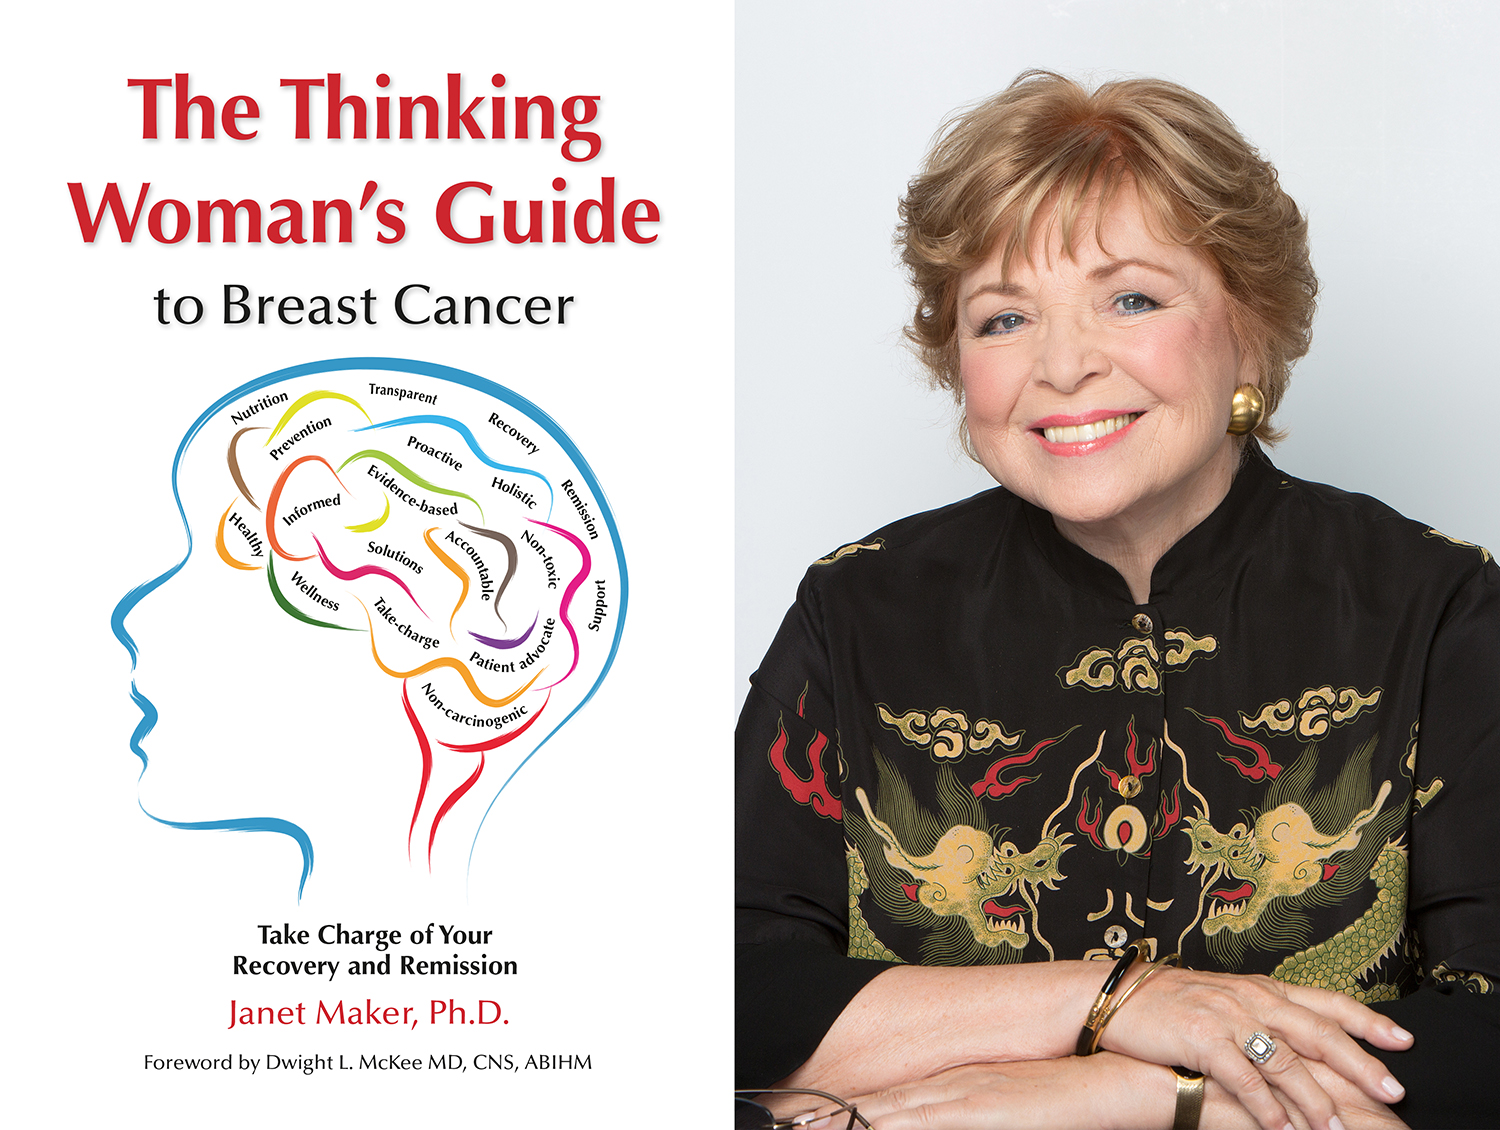 Dr. Janet Maker is a cancer survivor and the author of  The Thinking Woman's Guide to Breast Cancer: Take Charge of Your Recover and Remission .